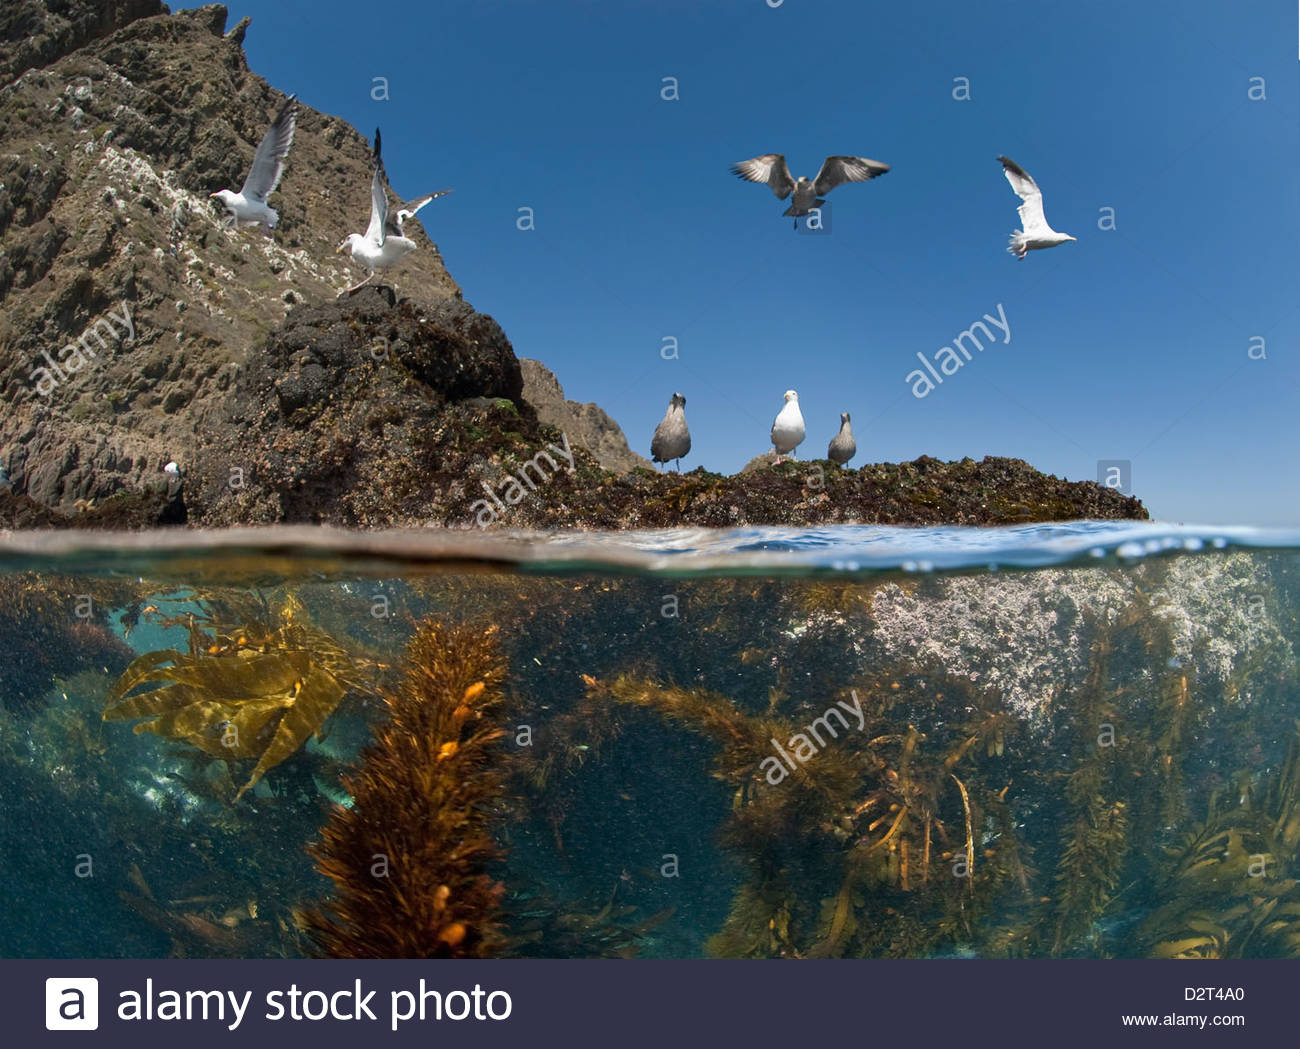 Underwater photo of Anacapa arch, kelp and birds, Channel Islands National Park, California, USA Stock Photo